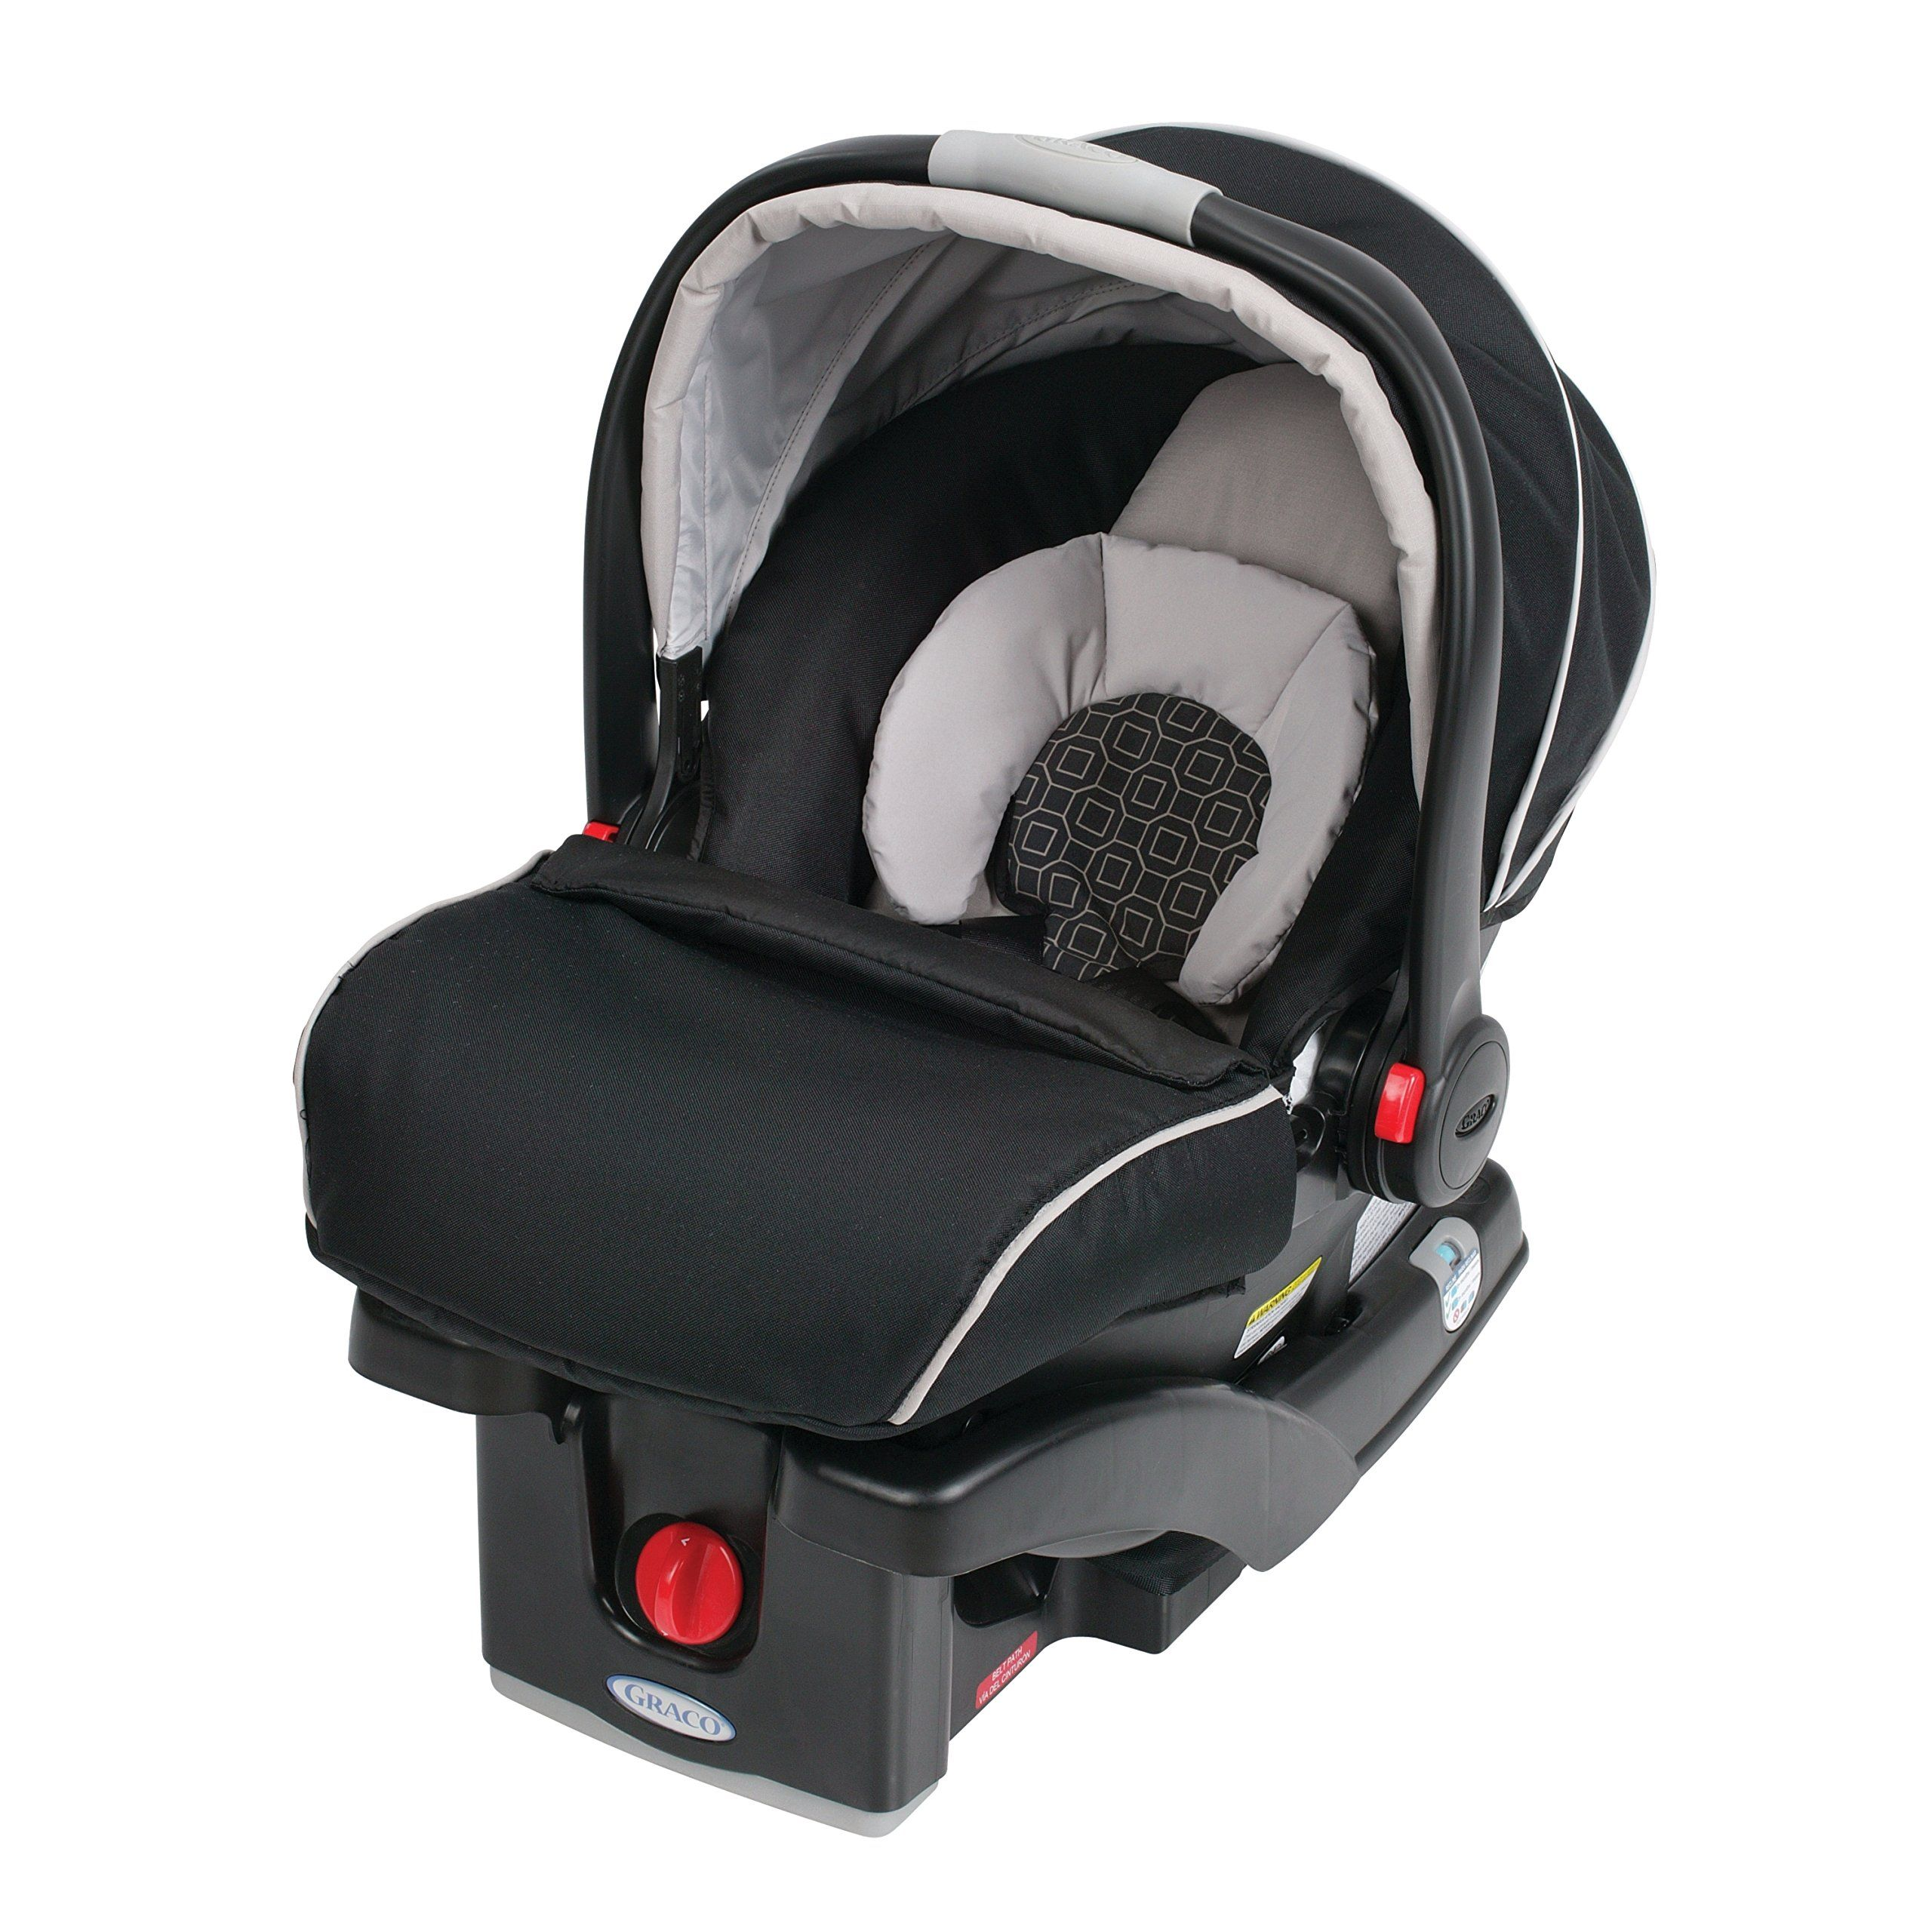 7 Best Baby Car Seat Protector Reviews Baby car seats